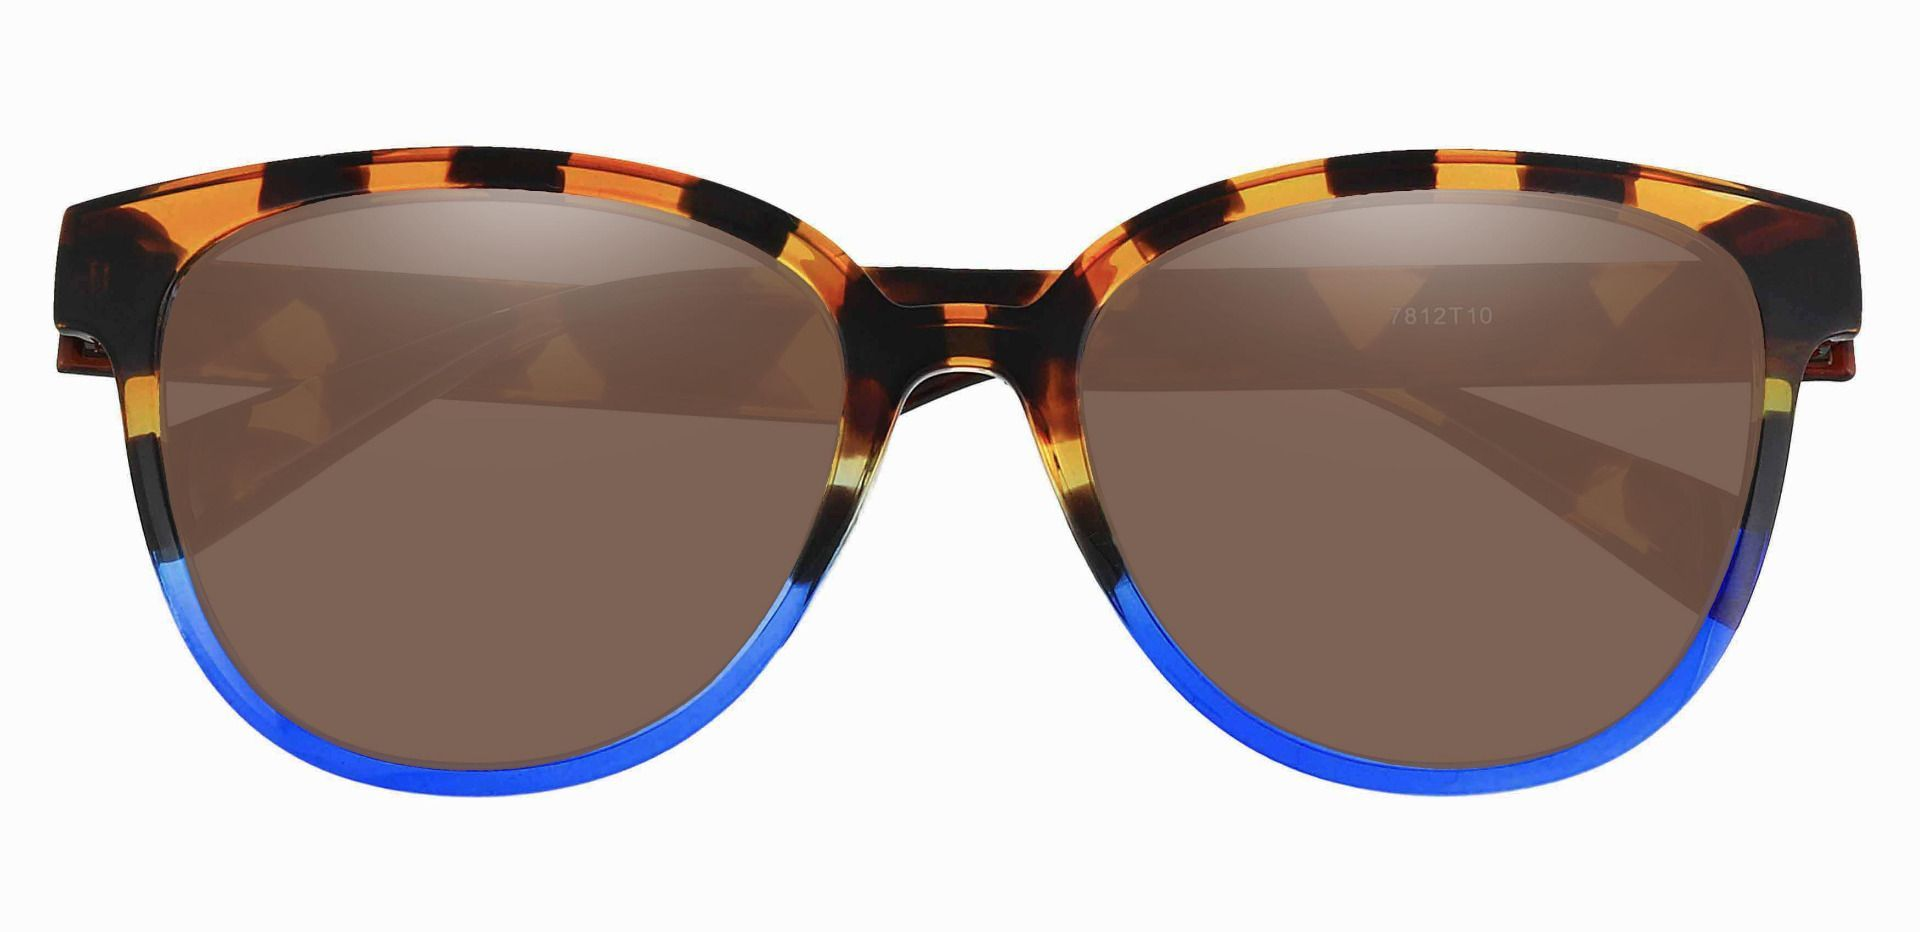 Newport Oval Lined Bifocal Sunglasses - Tortoise Frame With Brown Lenses